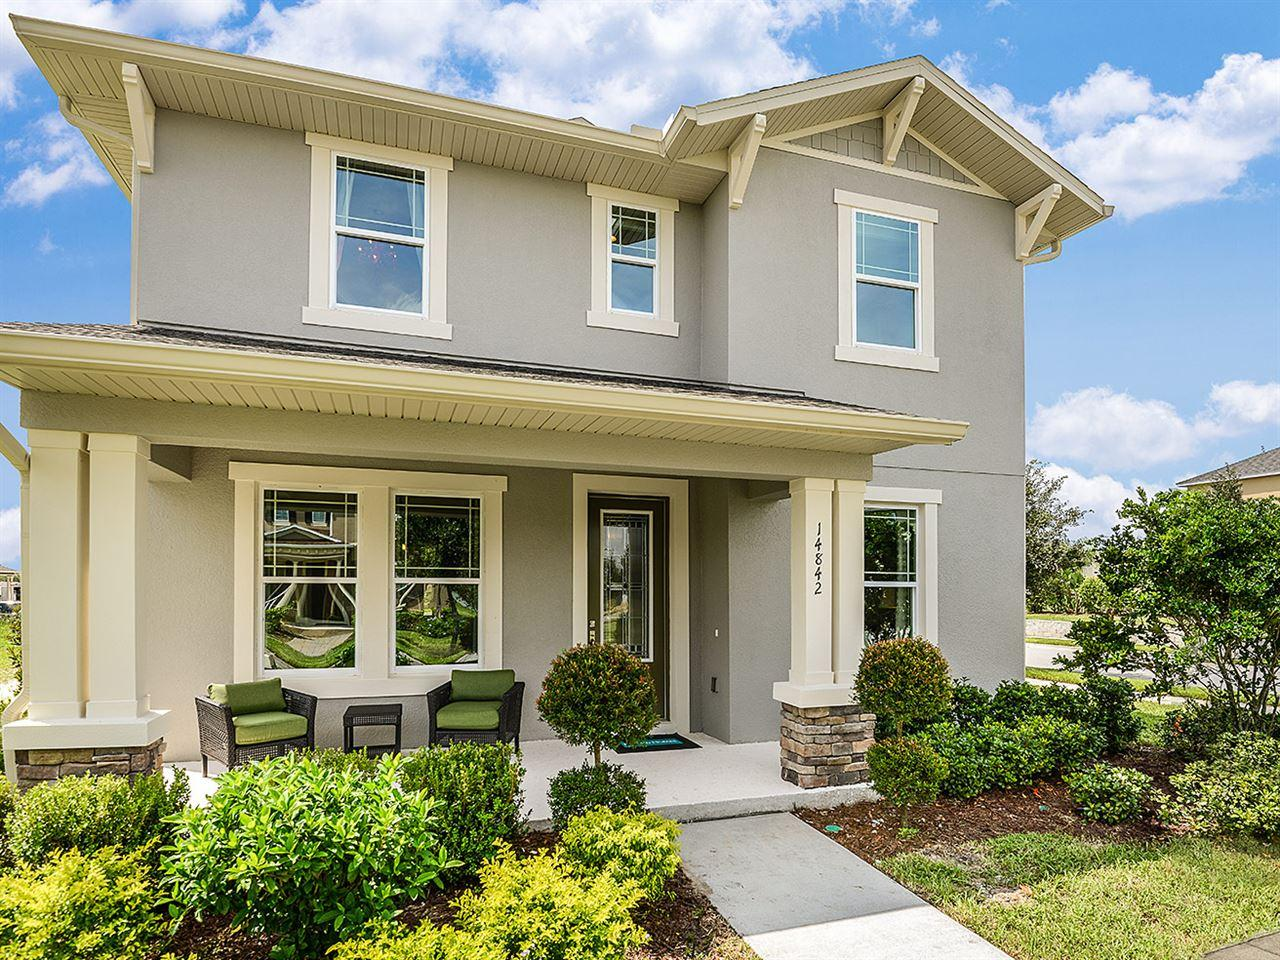 15618 porter rd for sale winter garden fl trulia